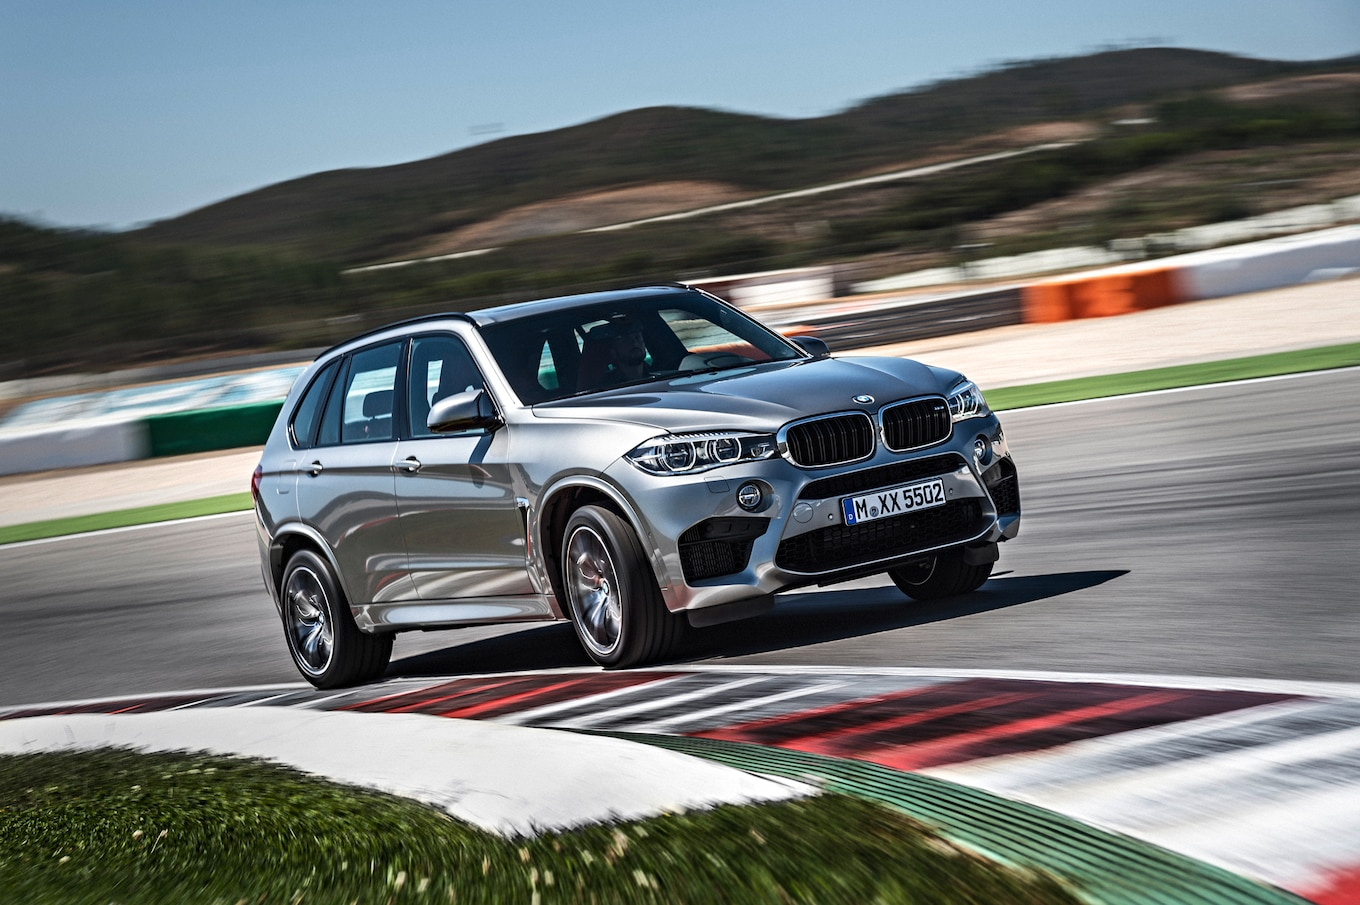 hight resolution of 2015 bmw x5 m